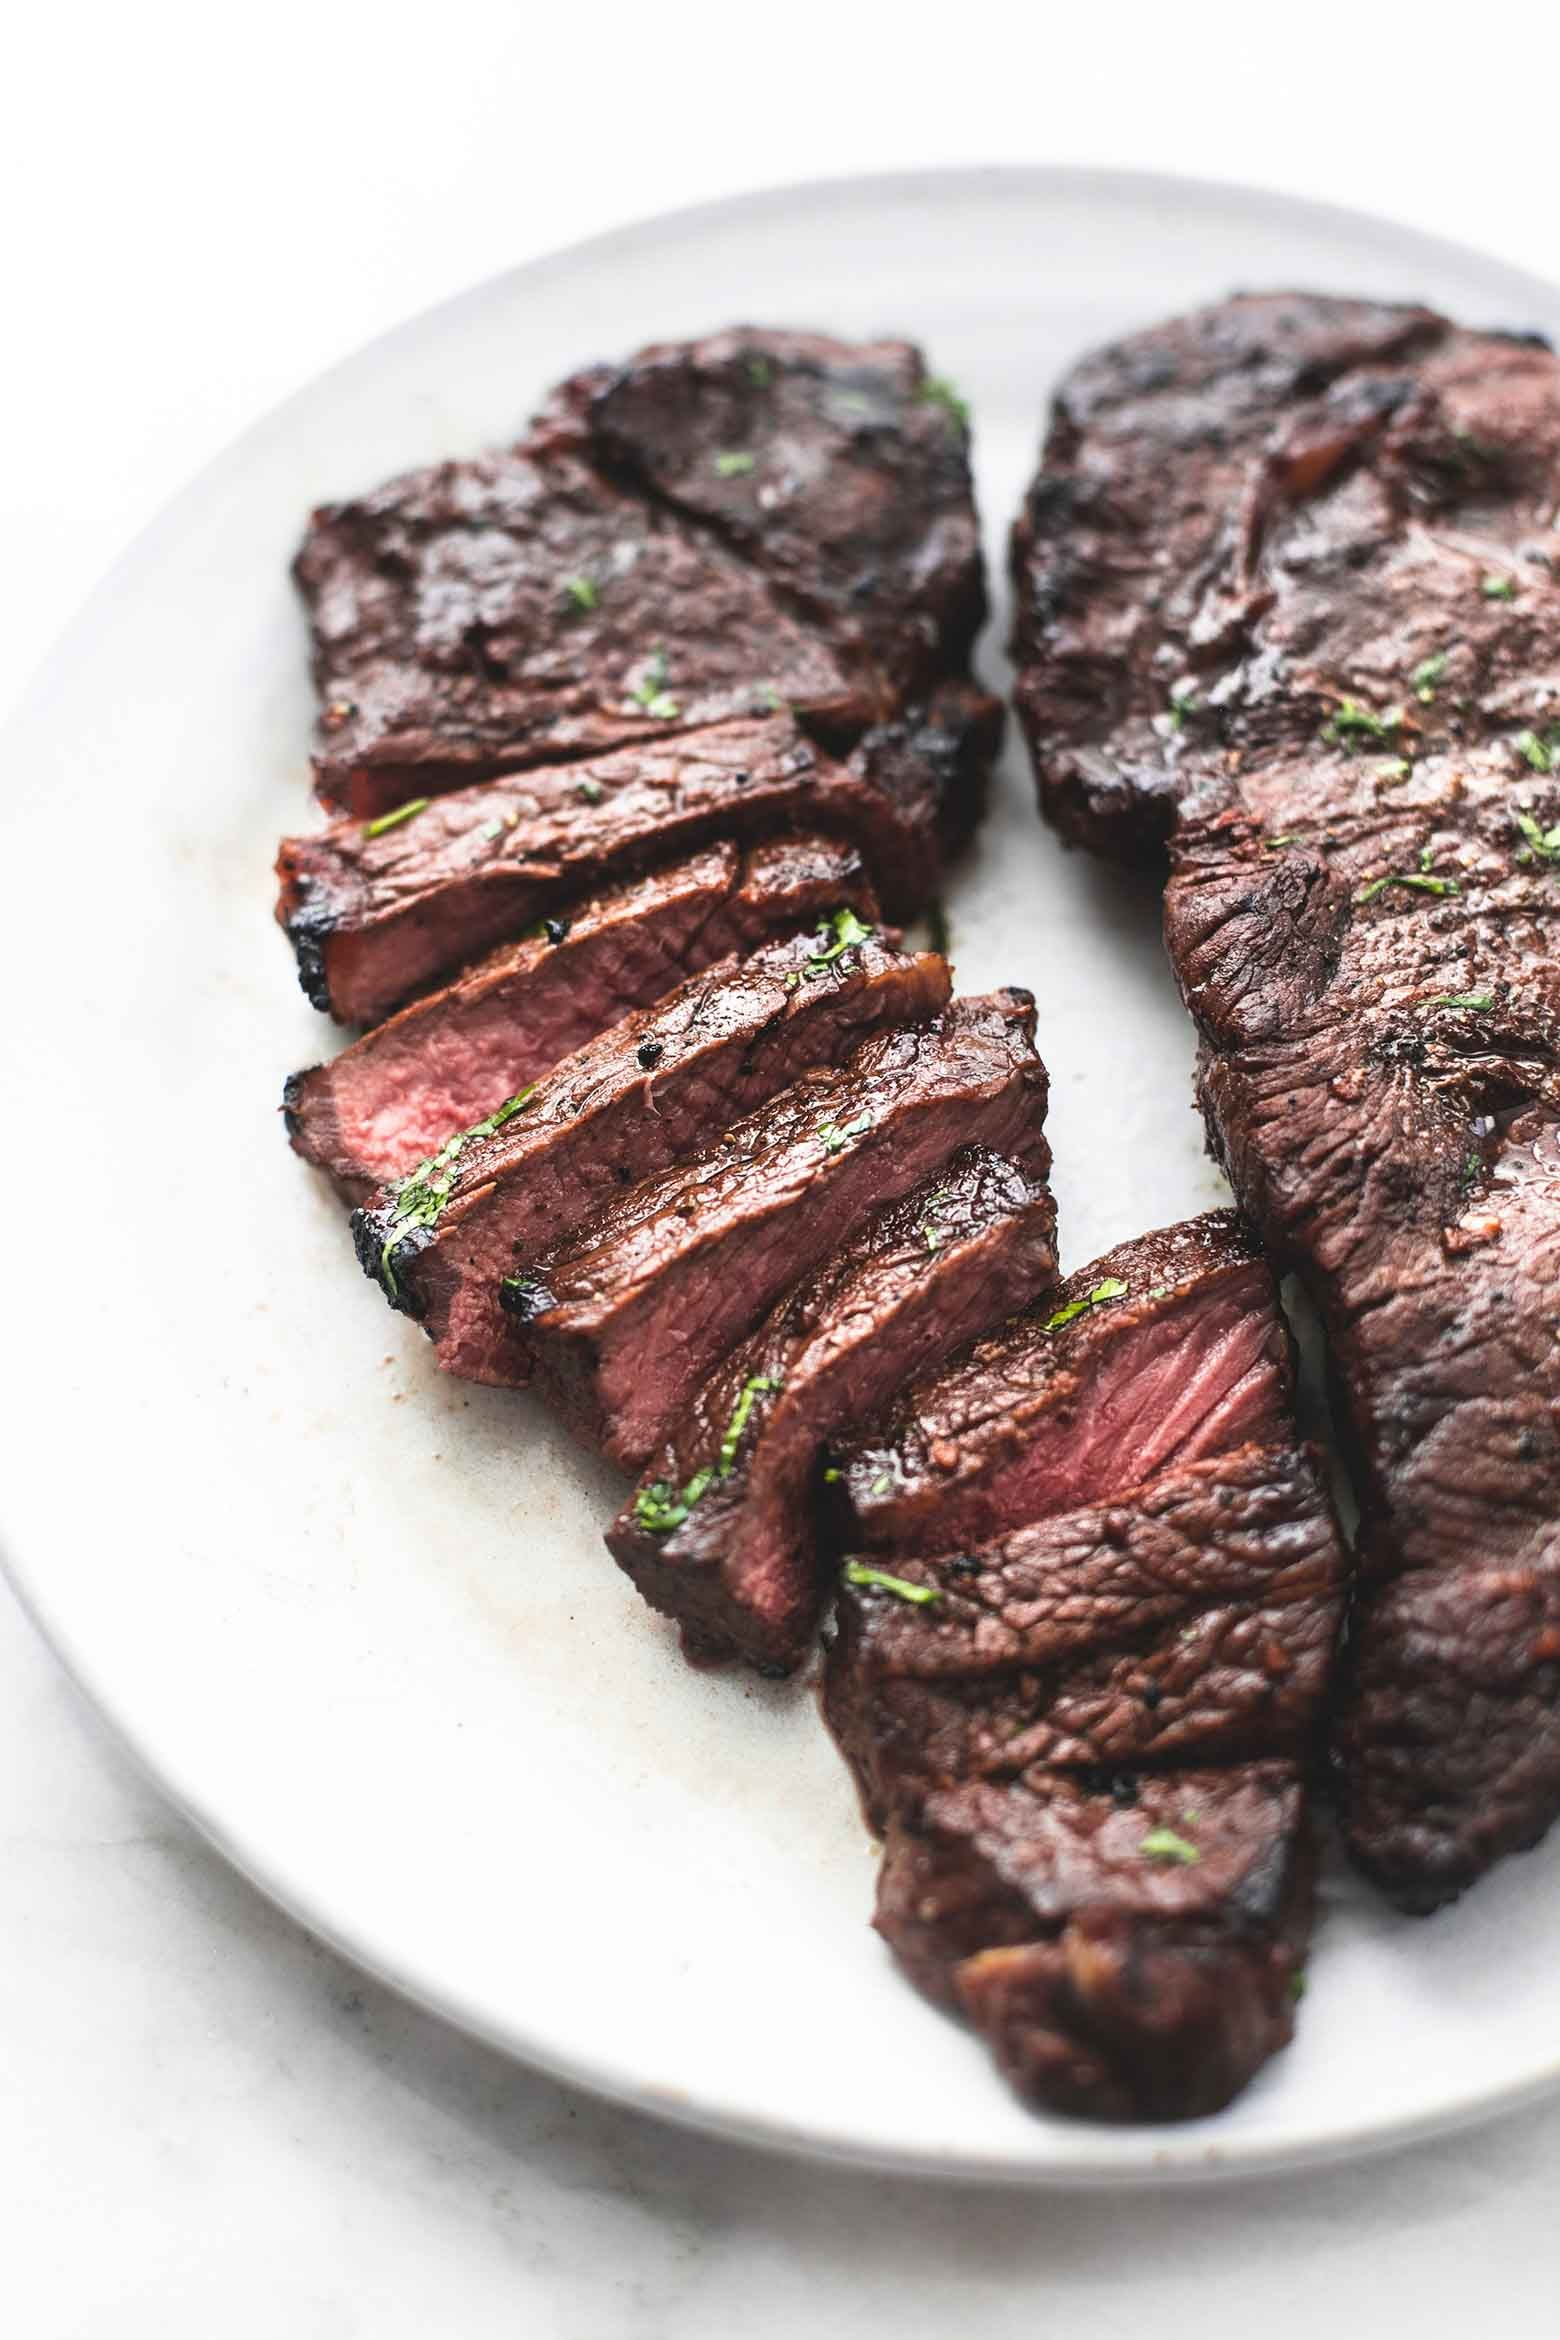 Best Quick Steak Marinade #steakmarinaderecipes